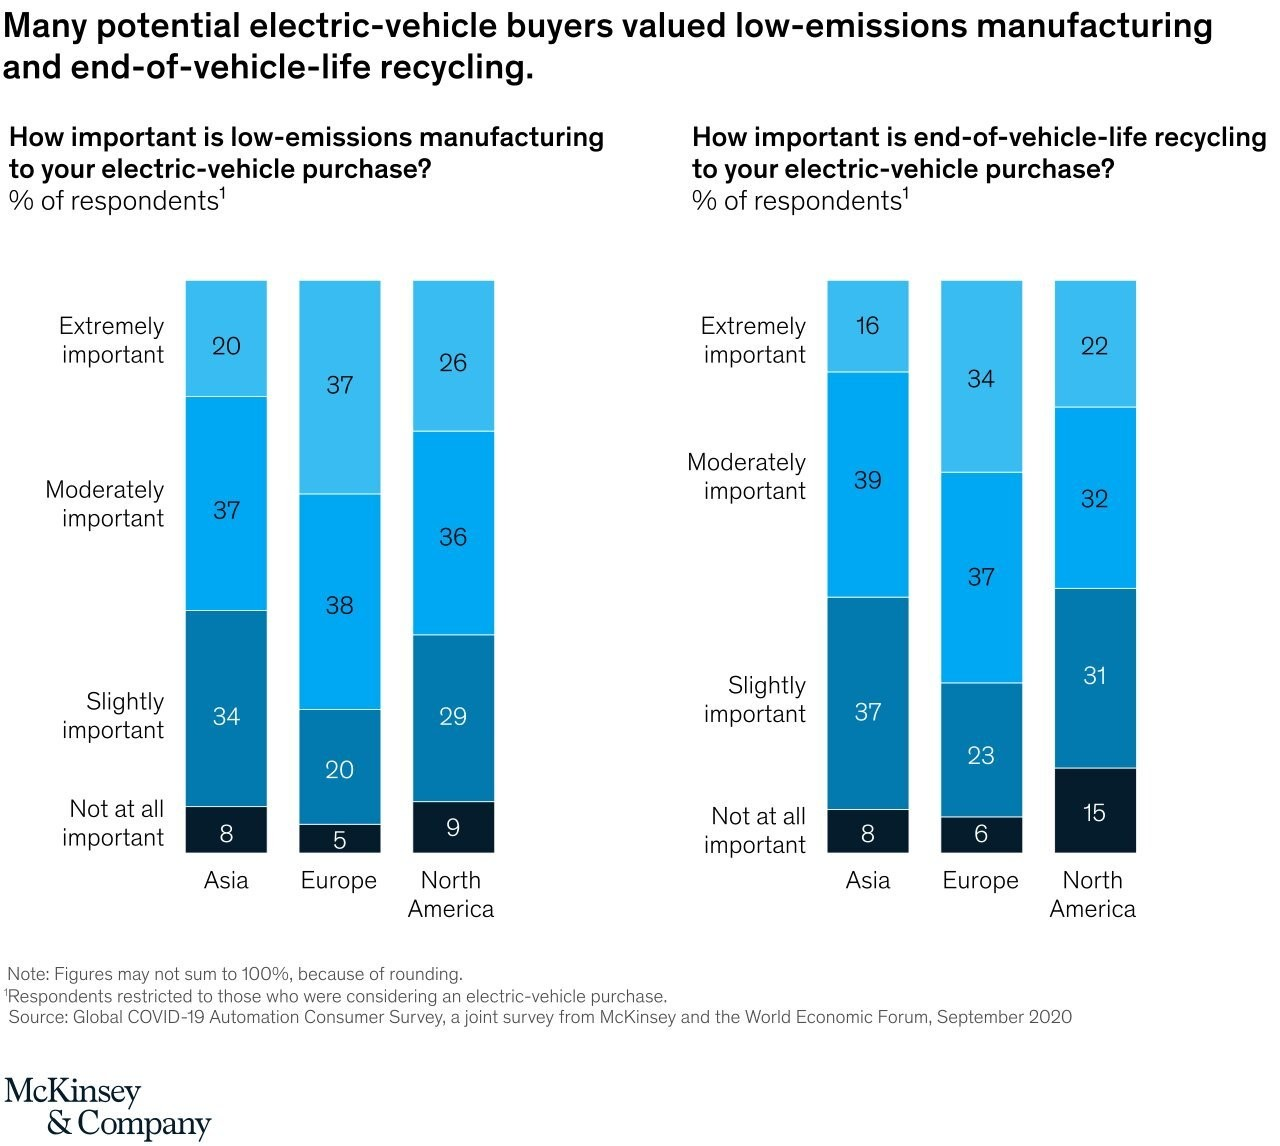 a chart showing that many electric vehicle buyers valued low-emissions manufacturing and end-of-life recycling.